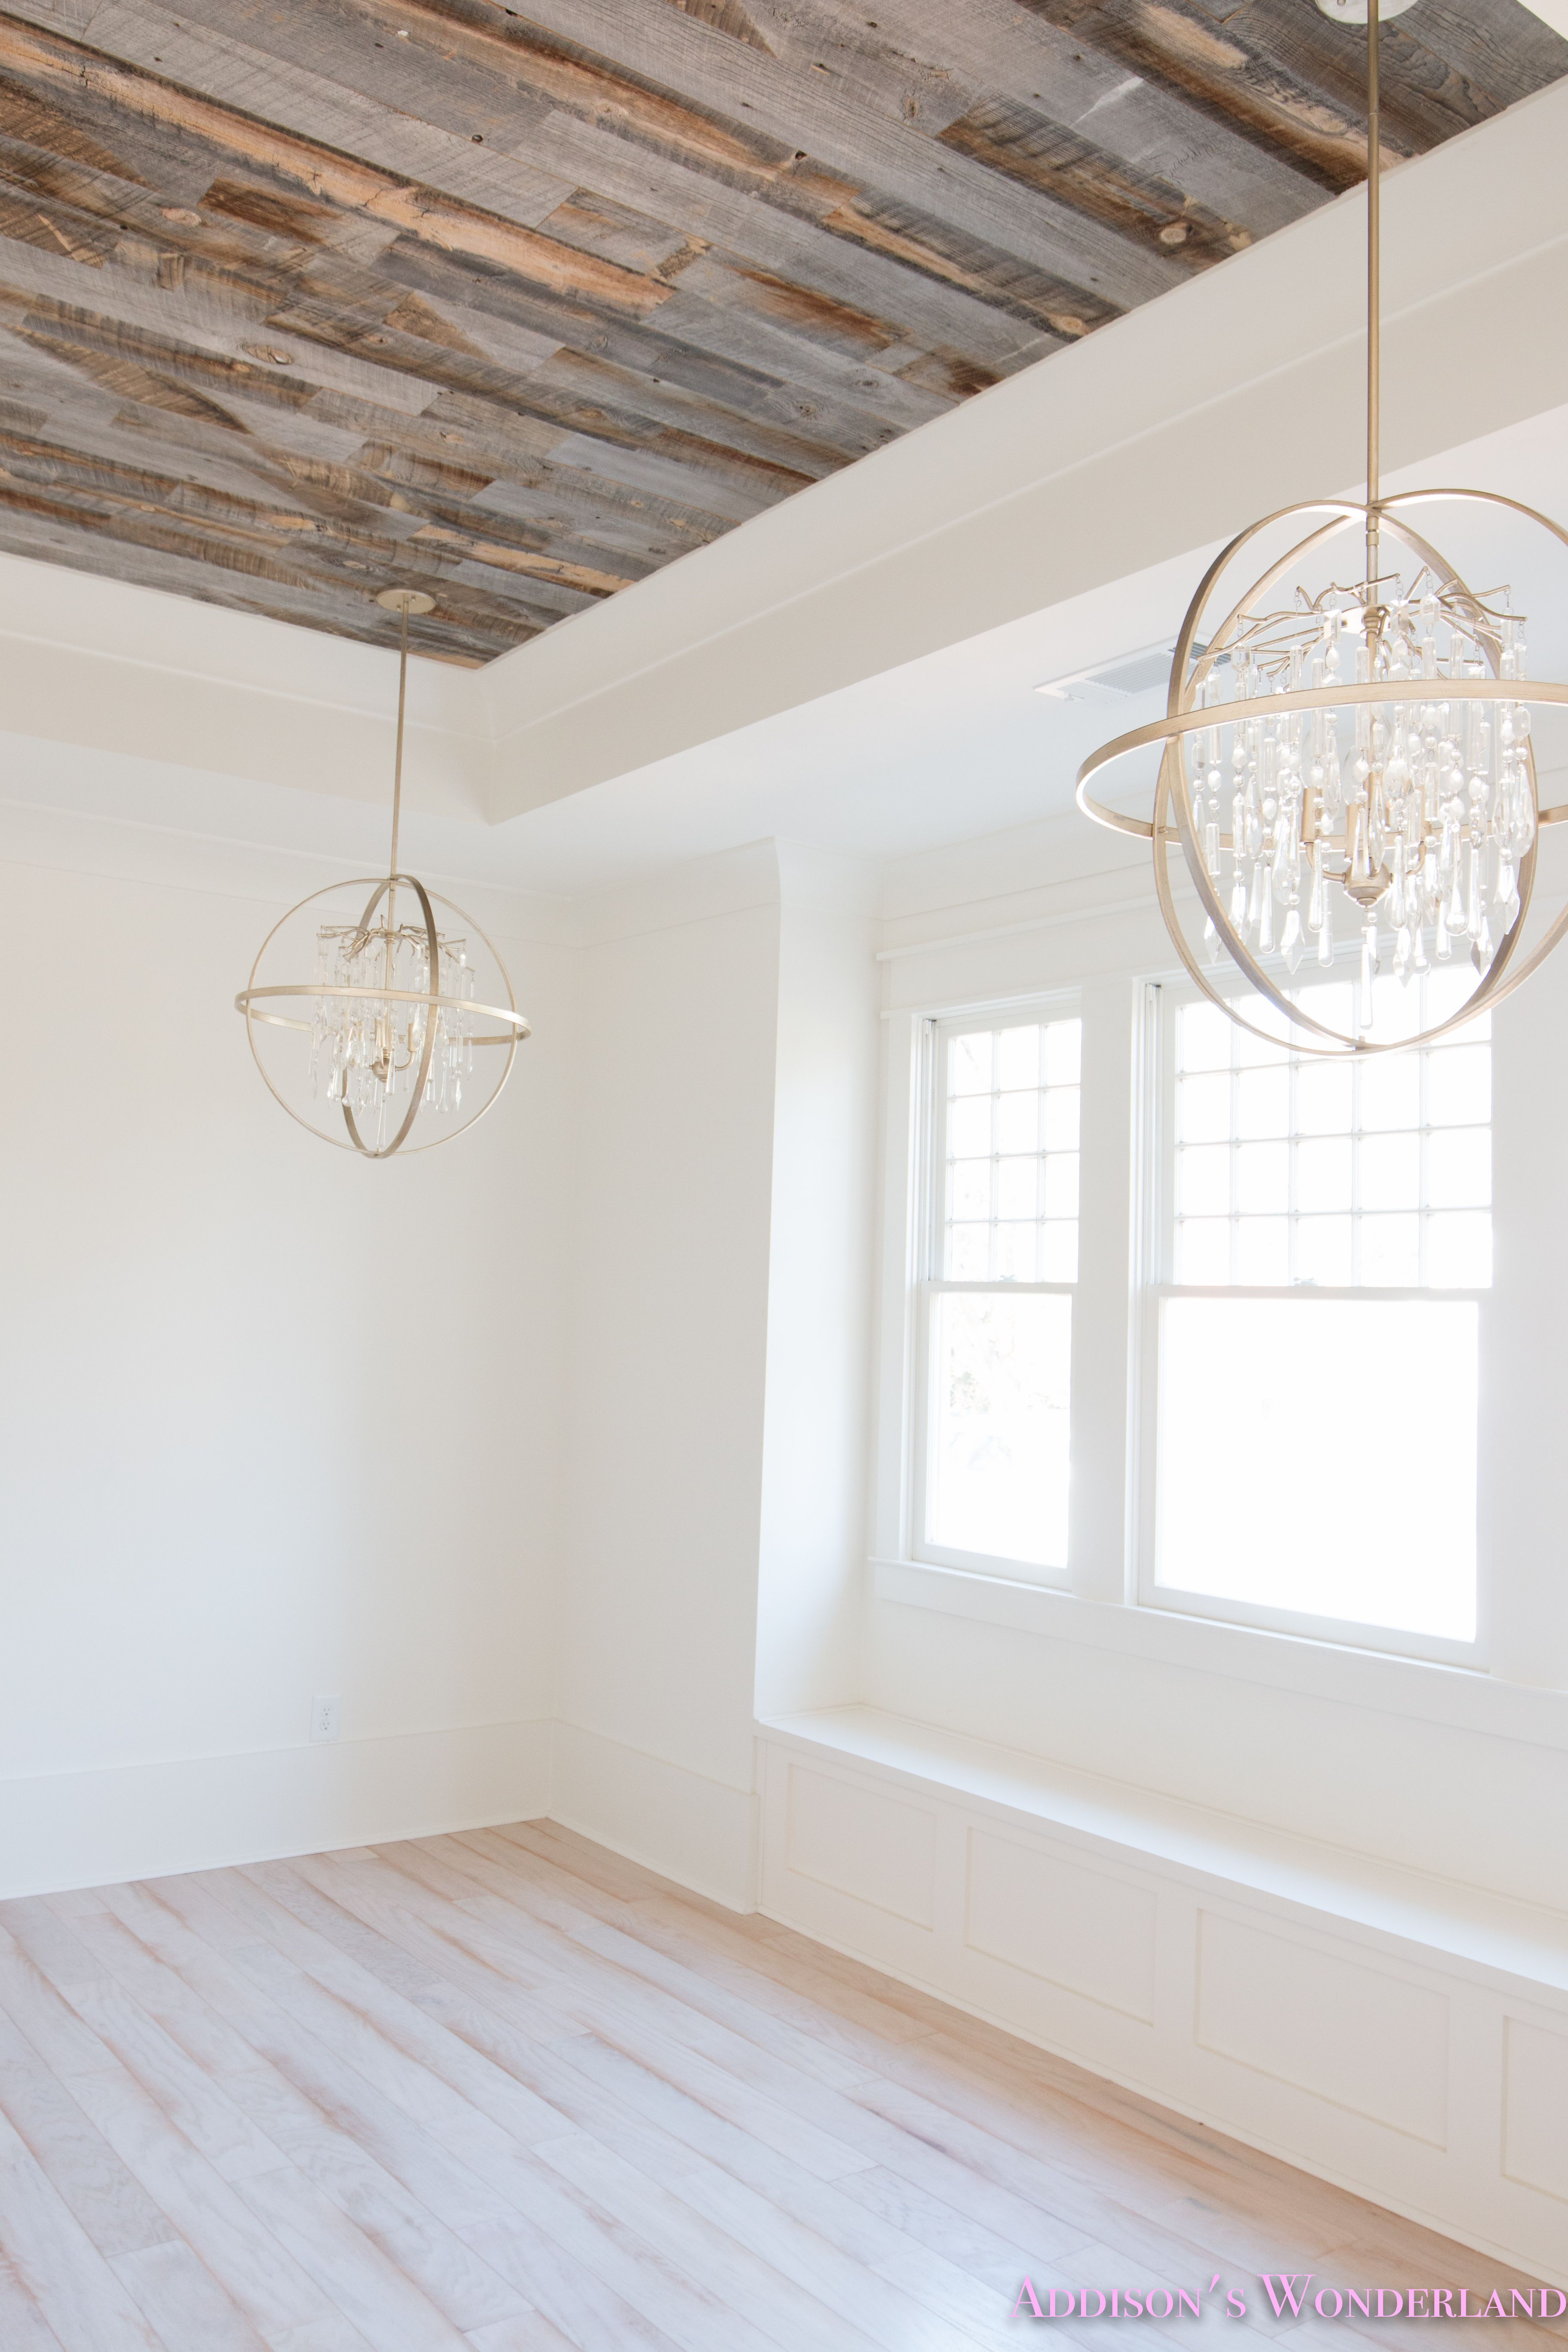 Painted Wood Ceilings Whitewashed Wood Ceilings Ideas Ceilings Little Girl